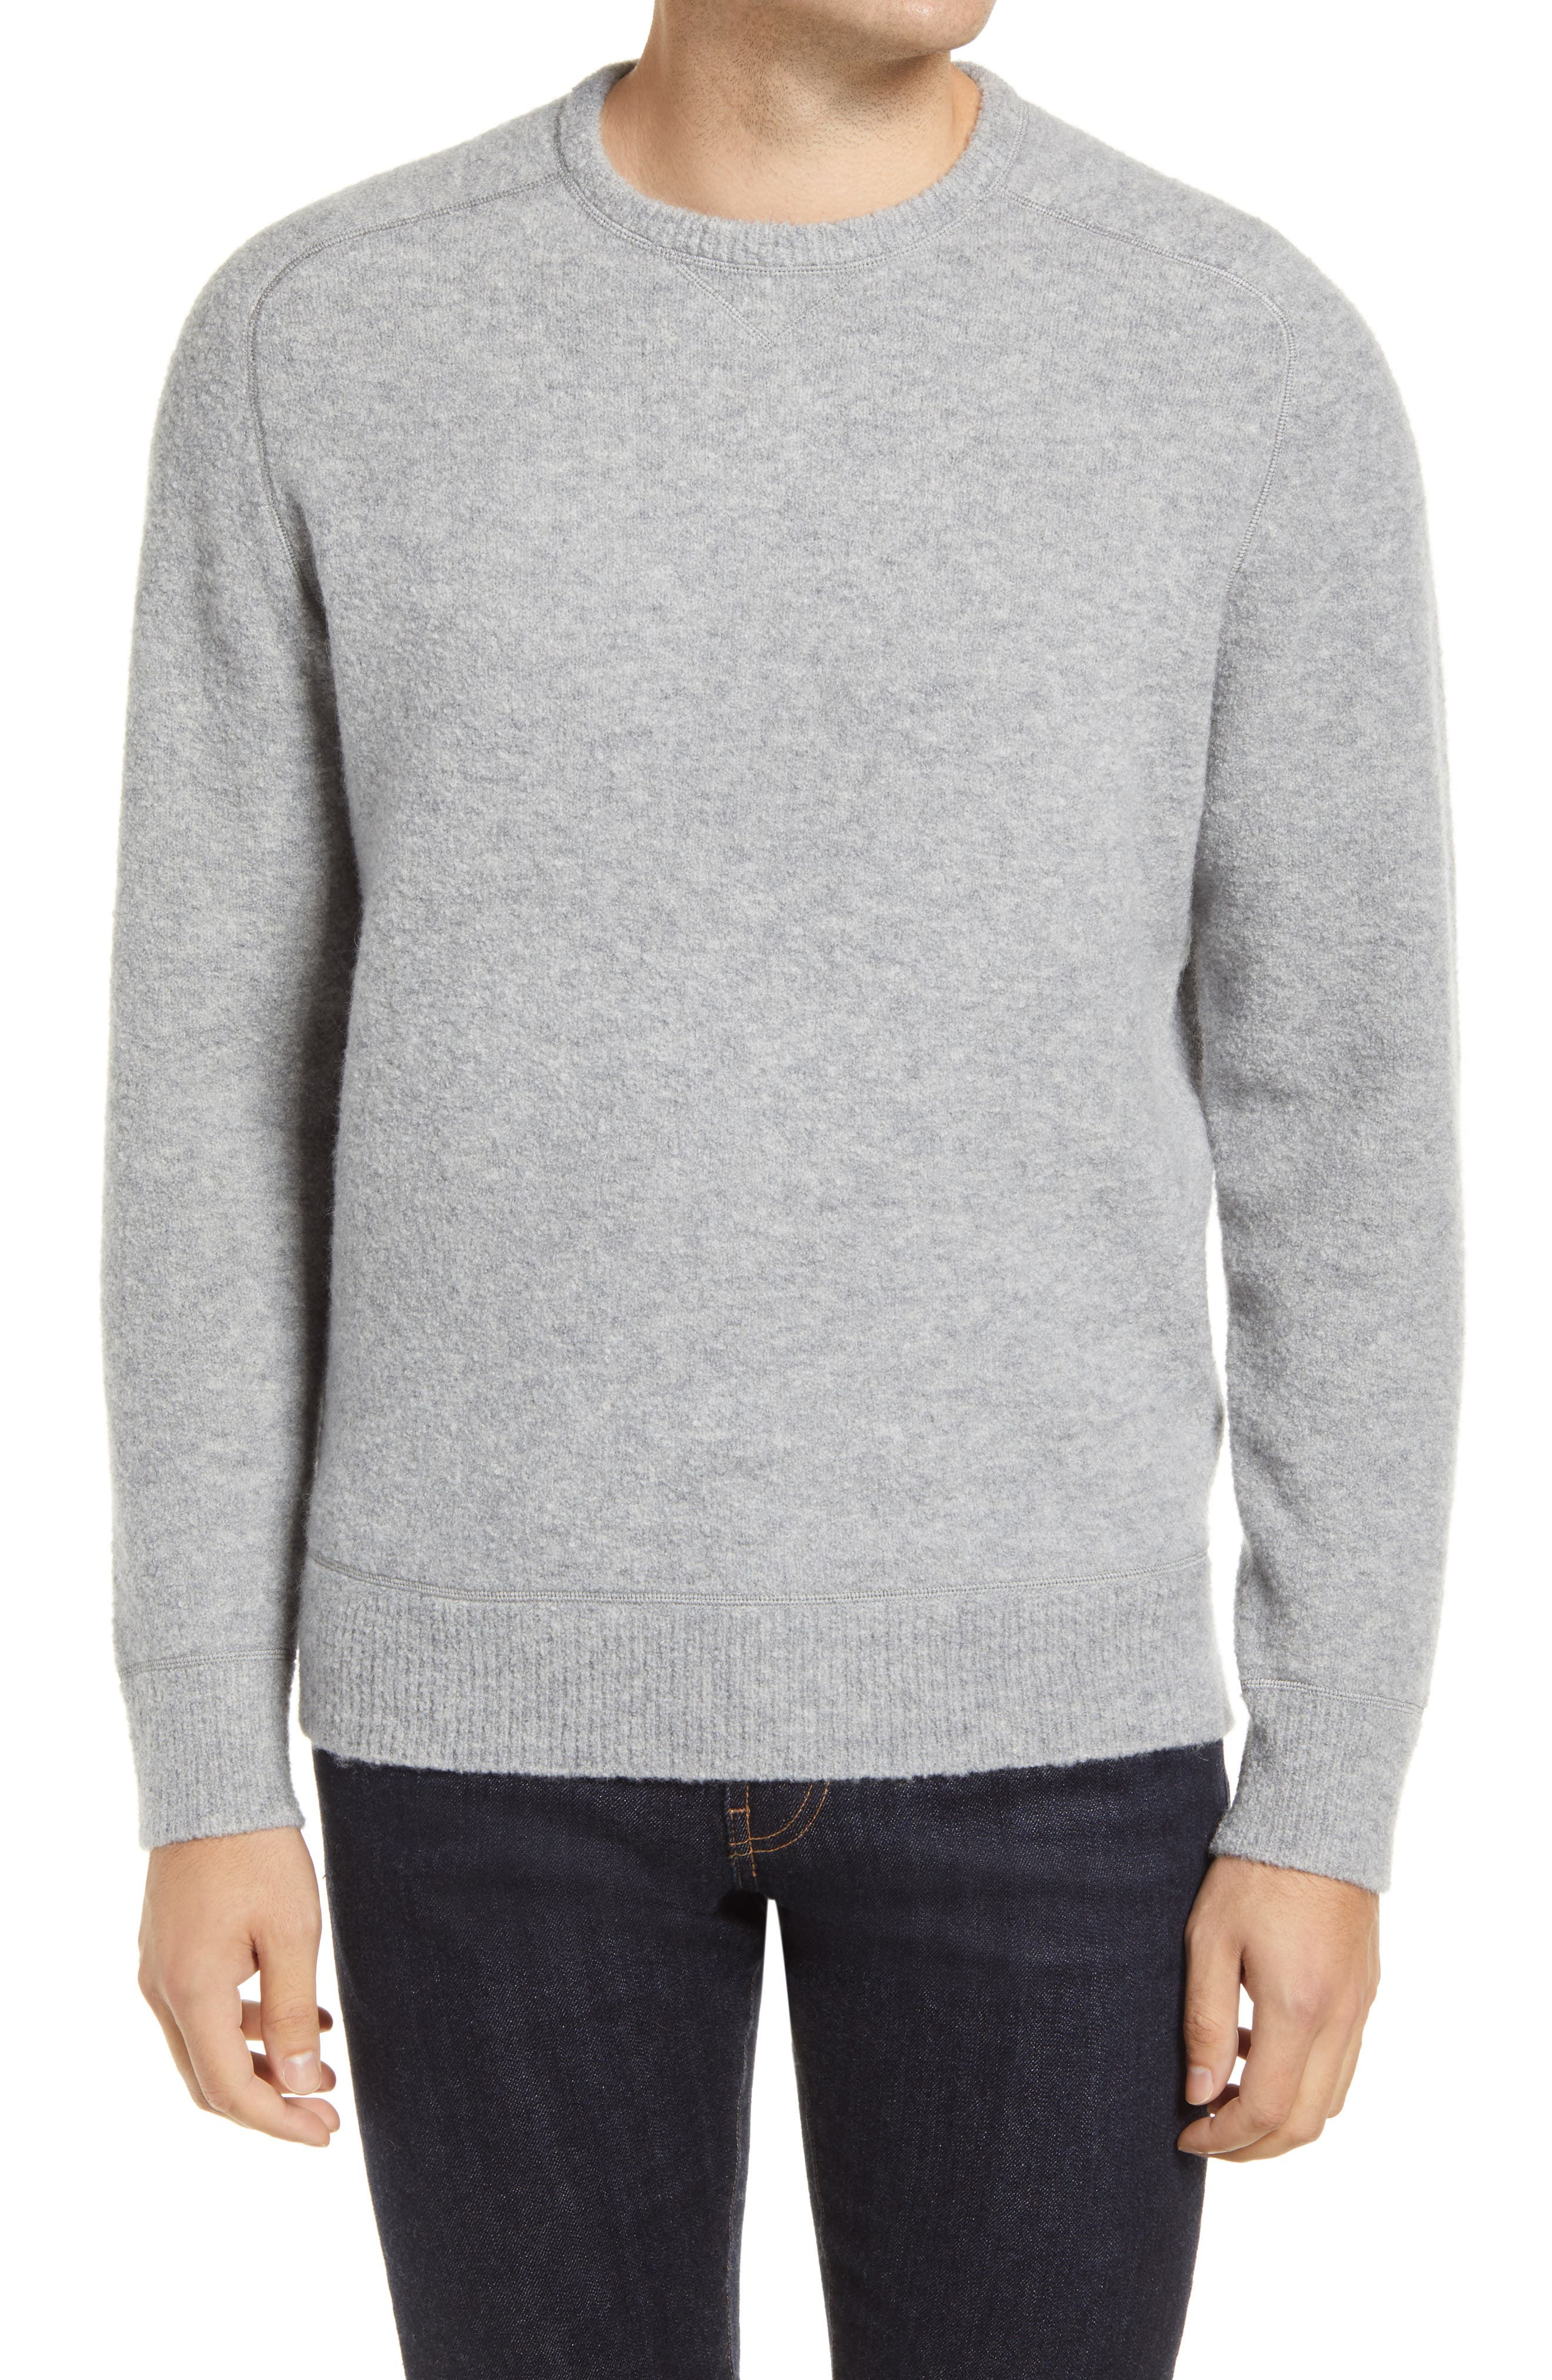 A richly textured merino wool blend with a dose of yak down elevates a handsome sweater with smart raglan sleeves. Style Name: Peter Millar Merino Wool Blend Raglan Sweater. Style Number: 6106594. Available in stores.